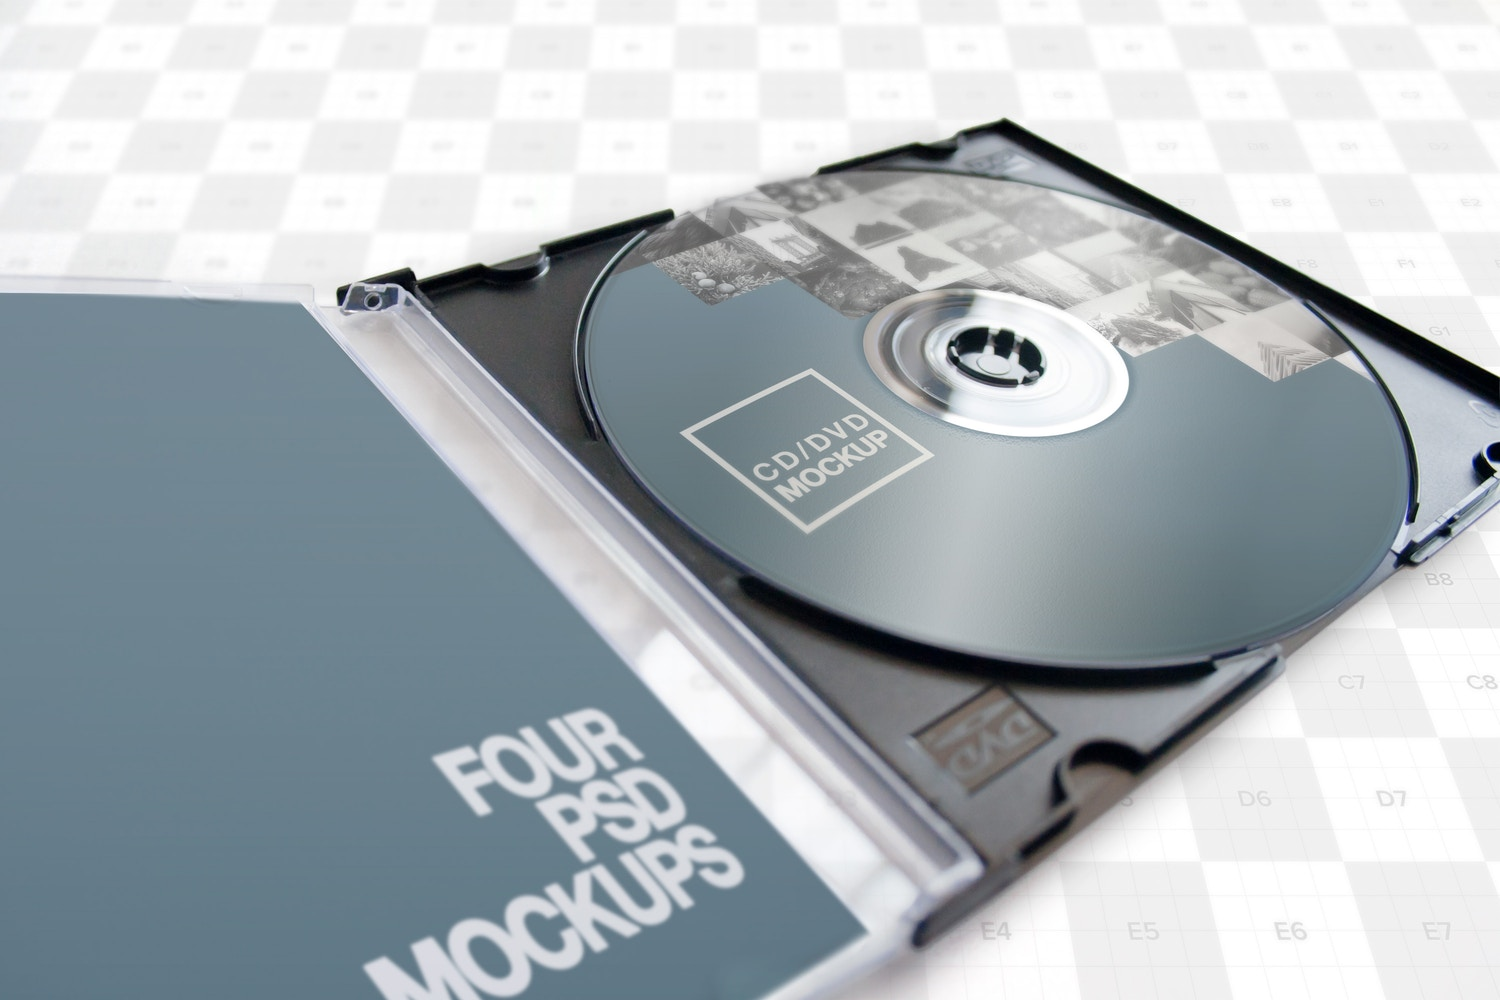 CD-DVD Jewel Case Opened Mockup 01 - Custom Background